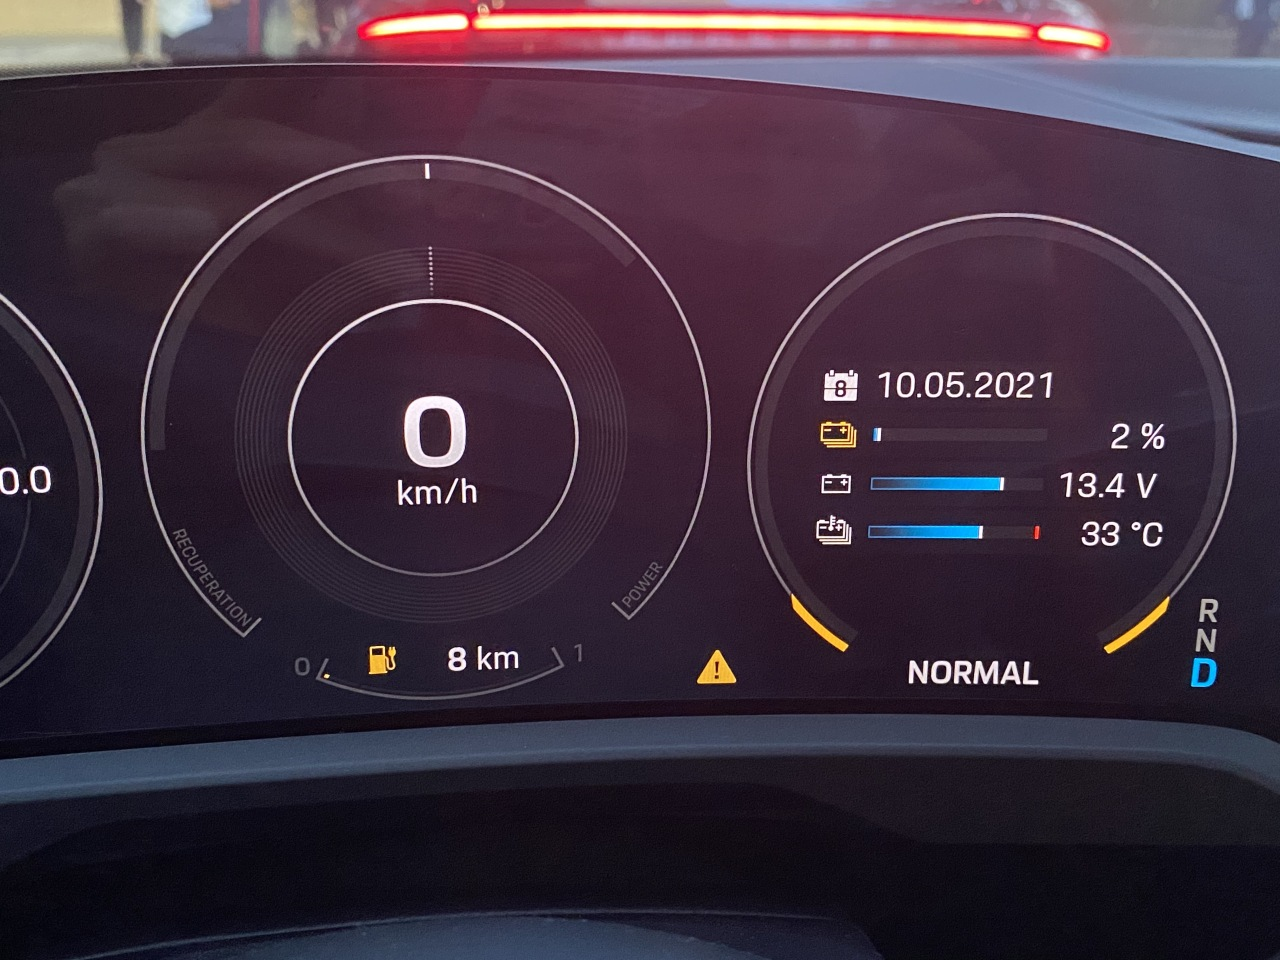 The Porsche Taycan 4S display shows 2 percent battery remaining and mileage of 8 kilometers, after being driven about 350 kilometers on a single charge Monday. (Jo He-rim/The Korea Herald)